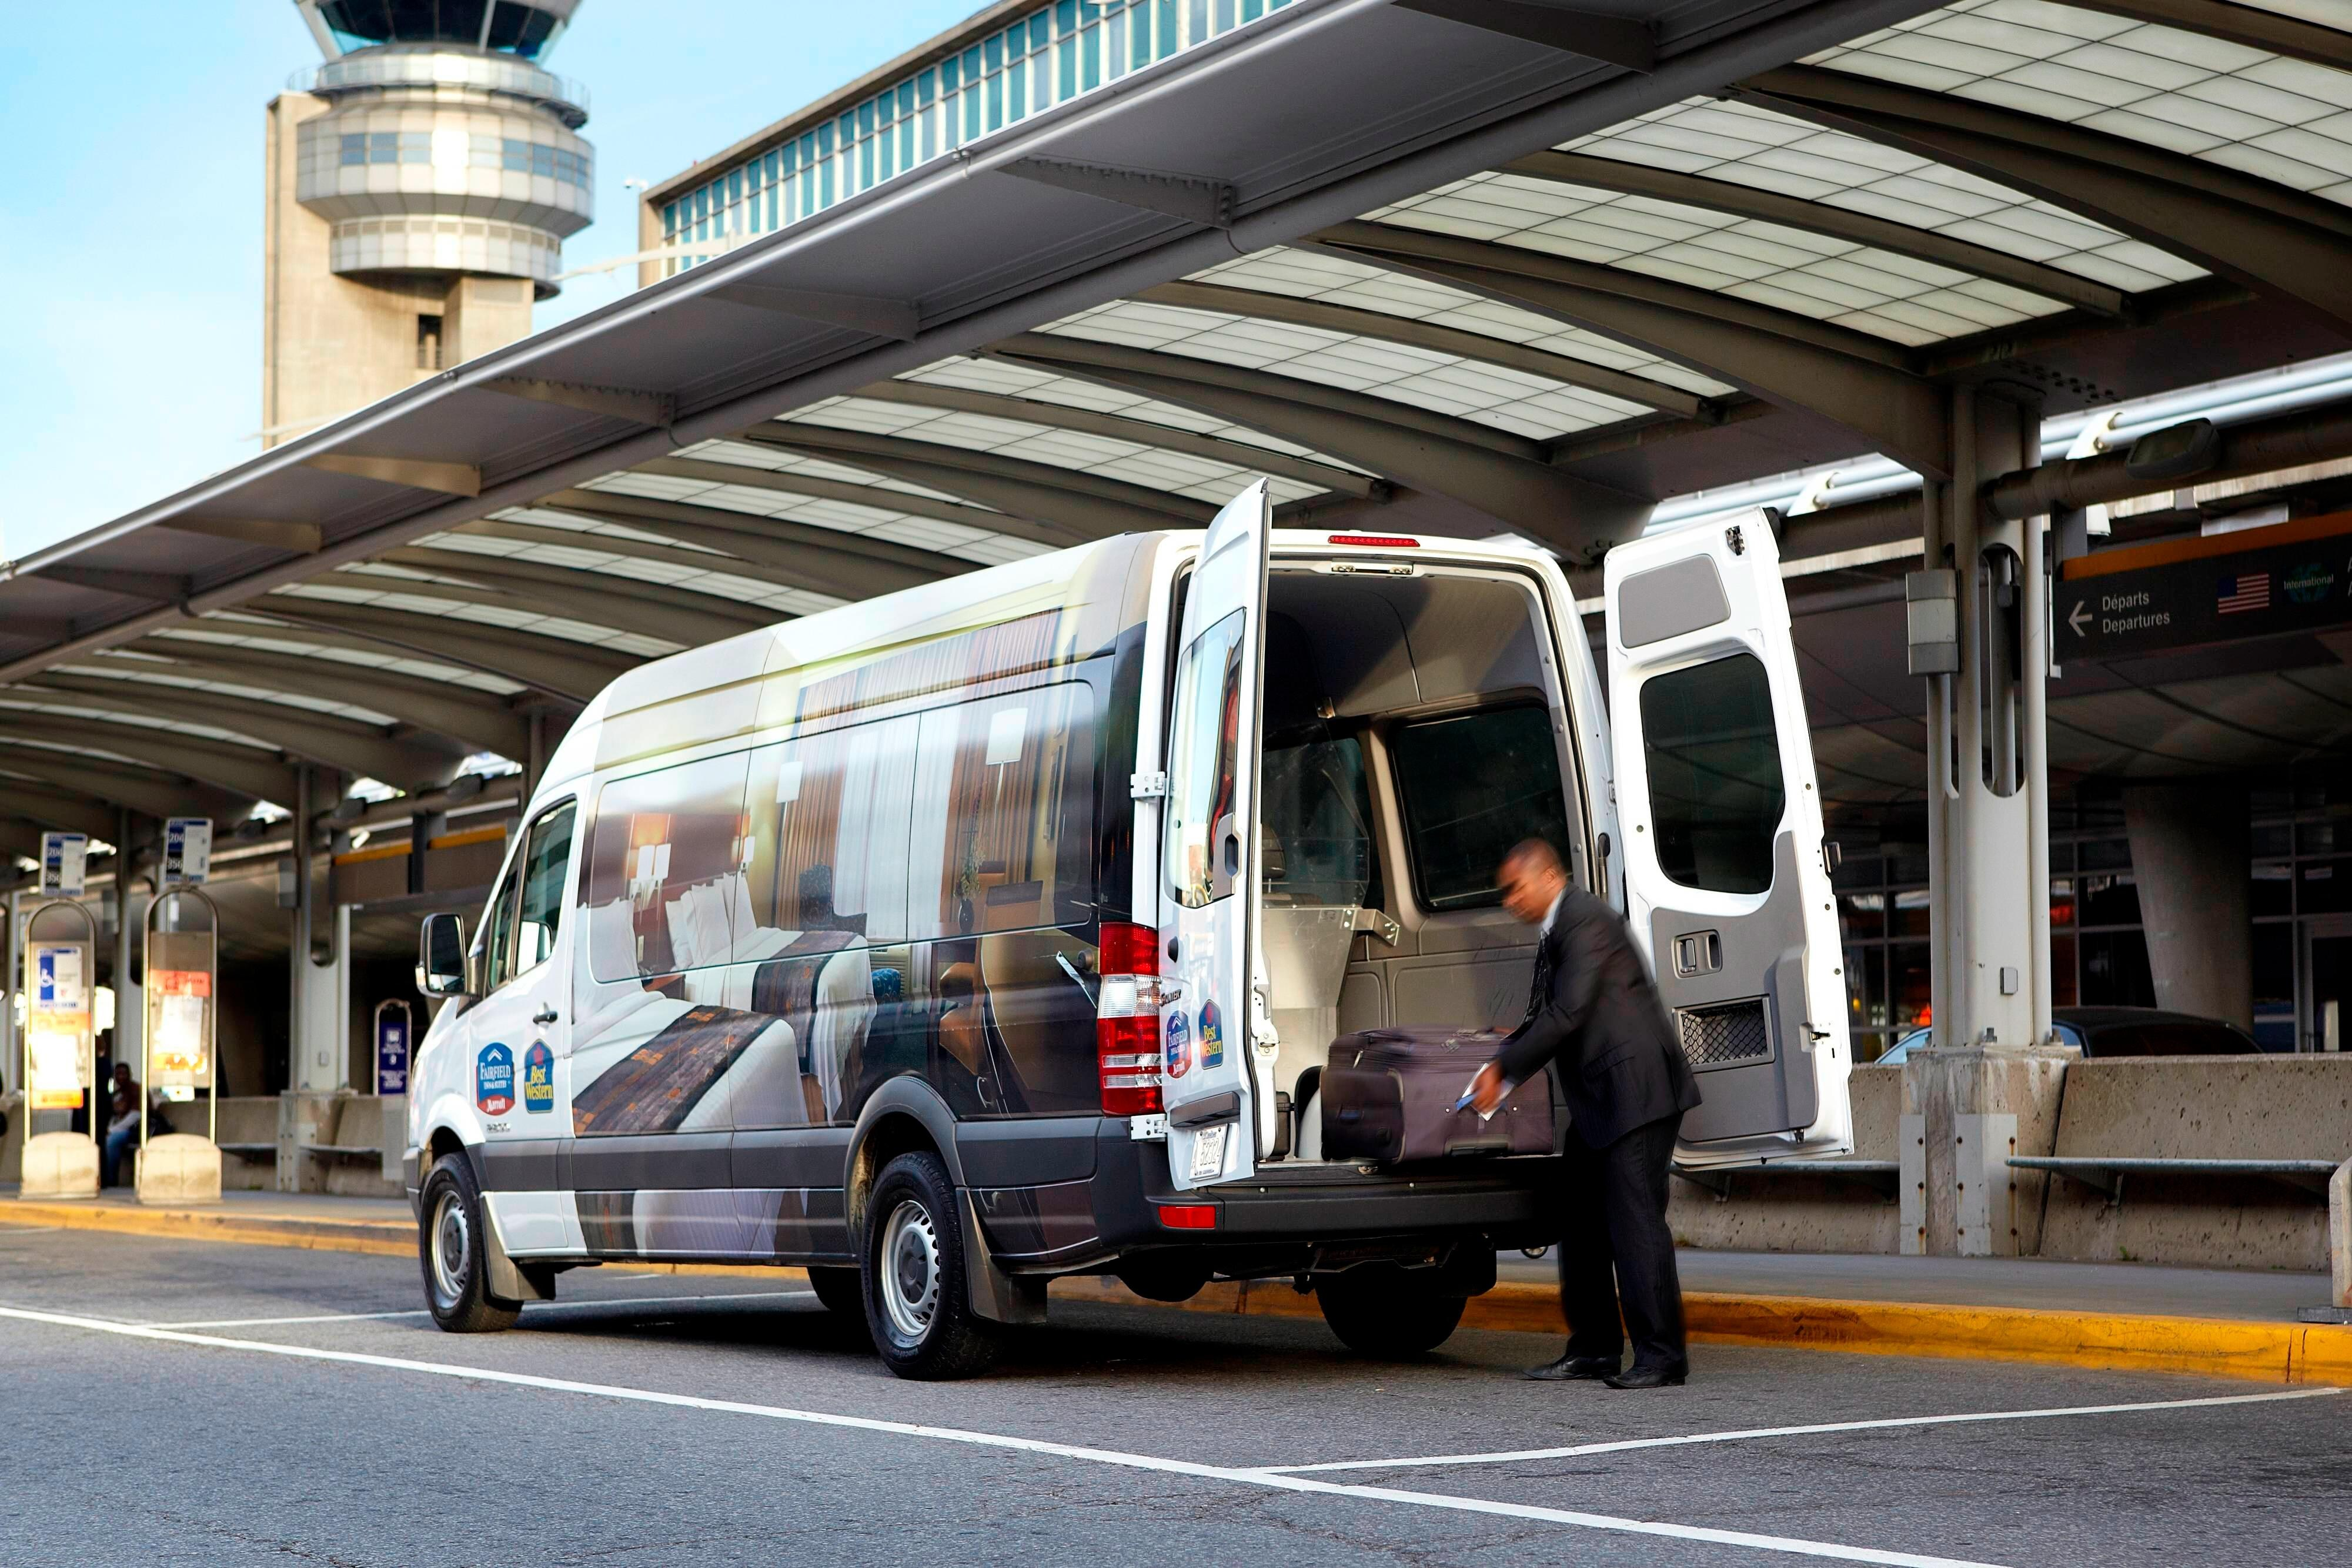 Montreal hotels with airport shuttle